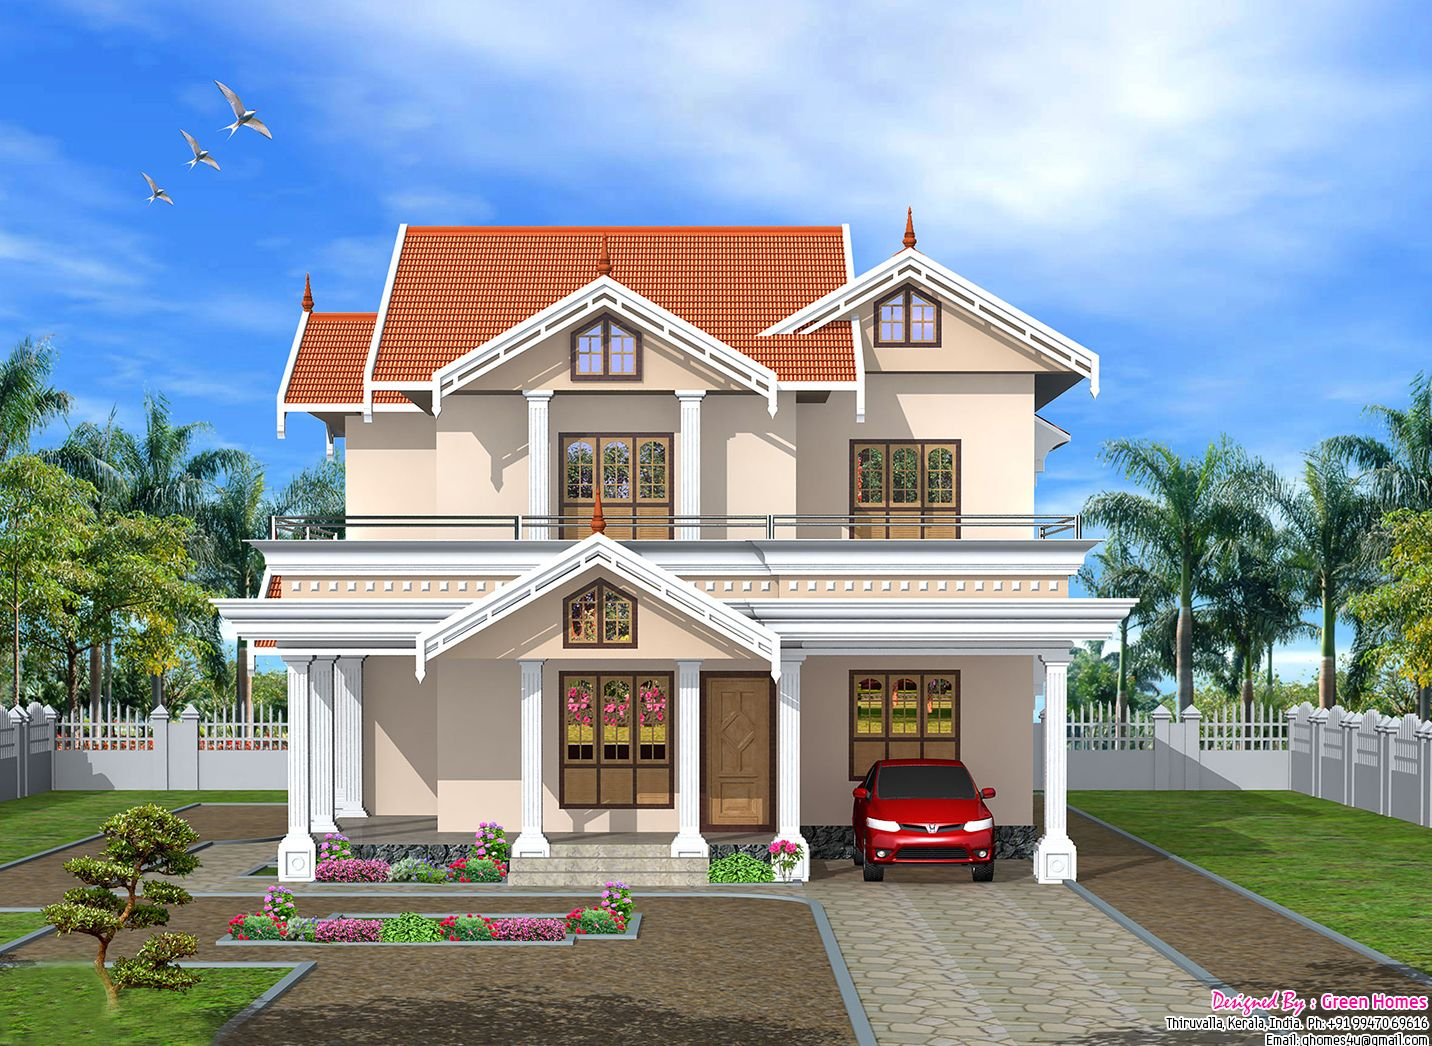 House design of america - Philippines House Panoramio Photo Of My Small House Ideas For The House Pinterest Smallest House House And Simple House